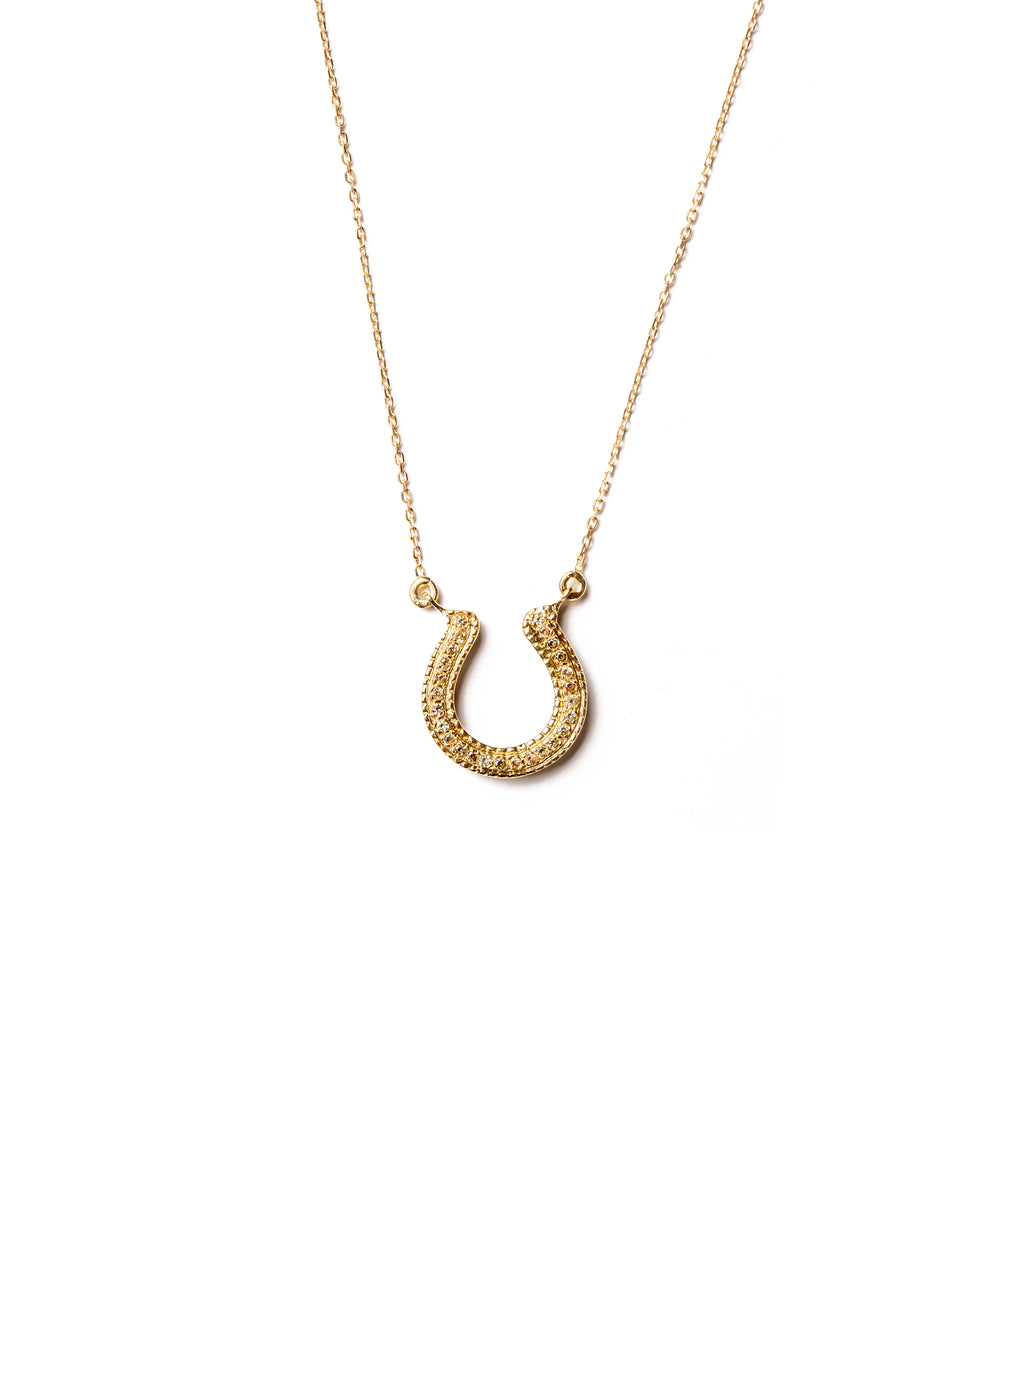 Horseshoe Necklace with Yellow Sapphires